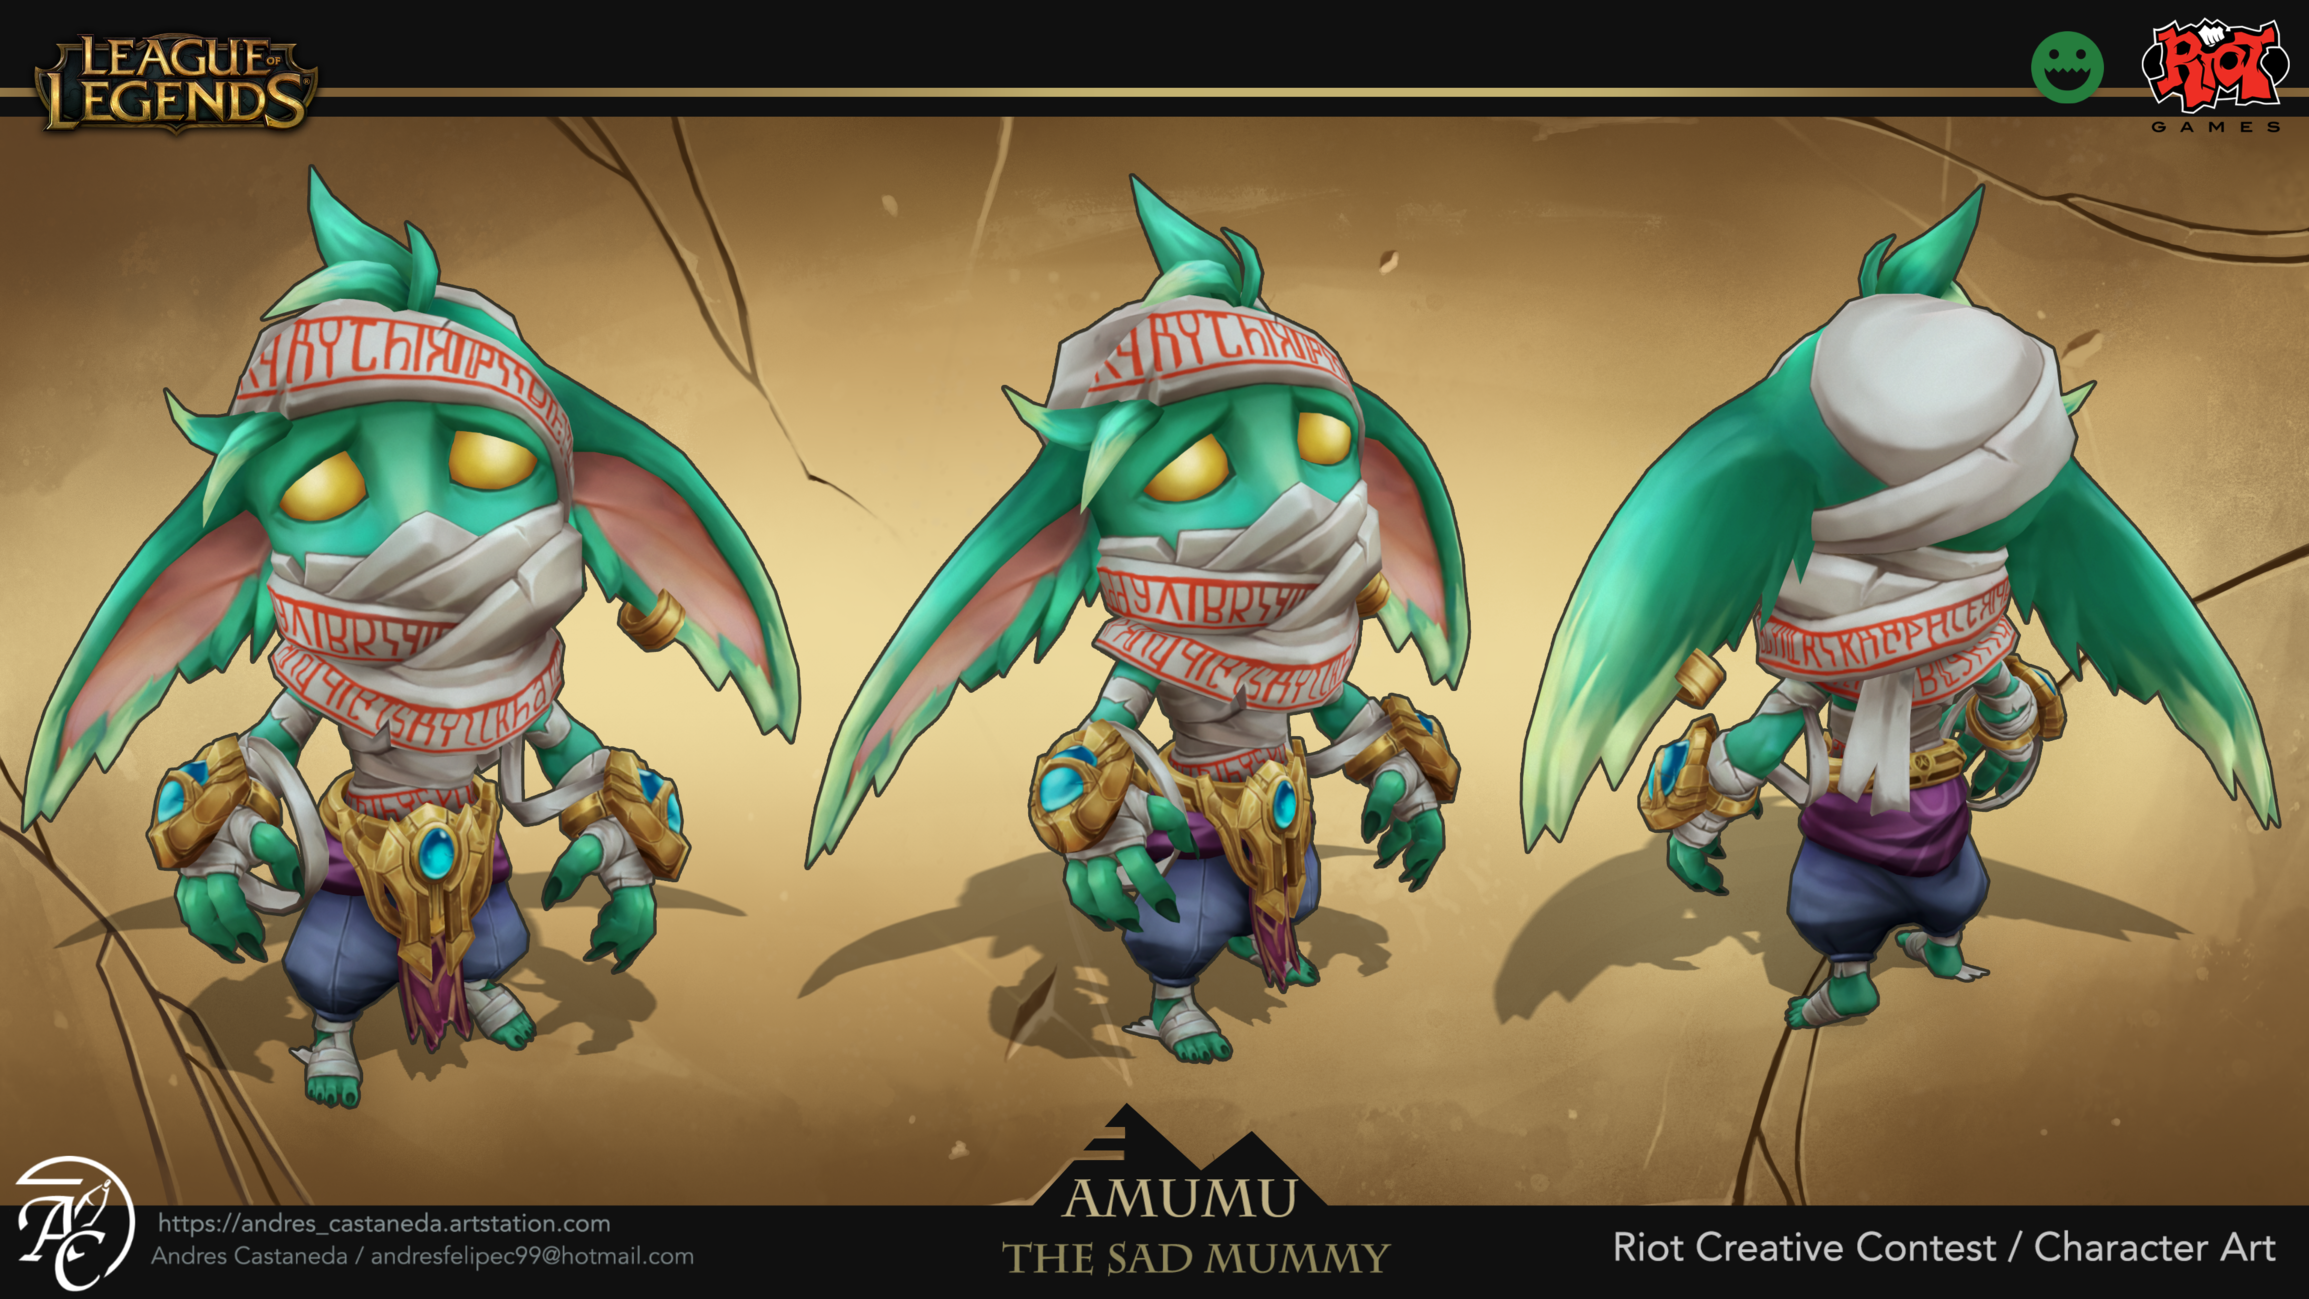 v5piznn23nbh - Lulu and Amumu really need a visual update more than any other champions.